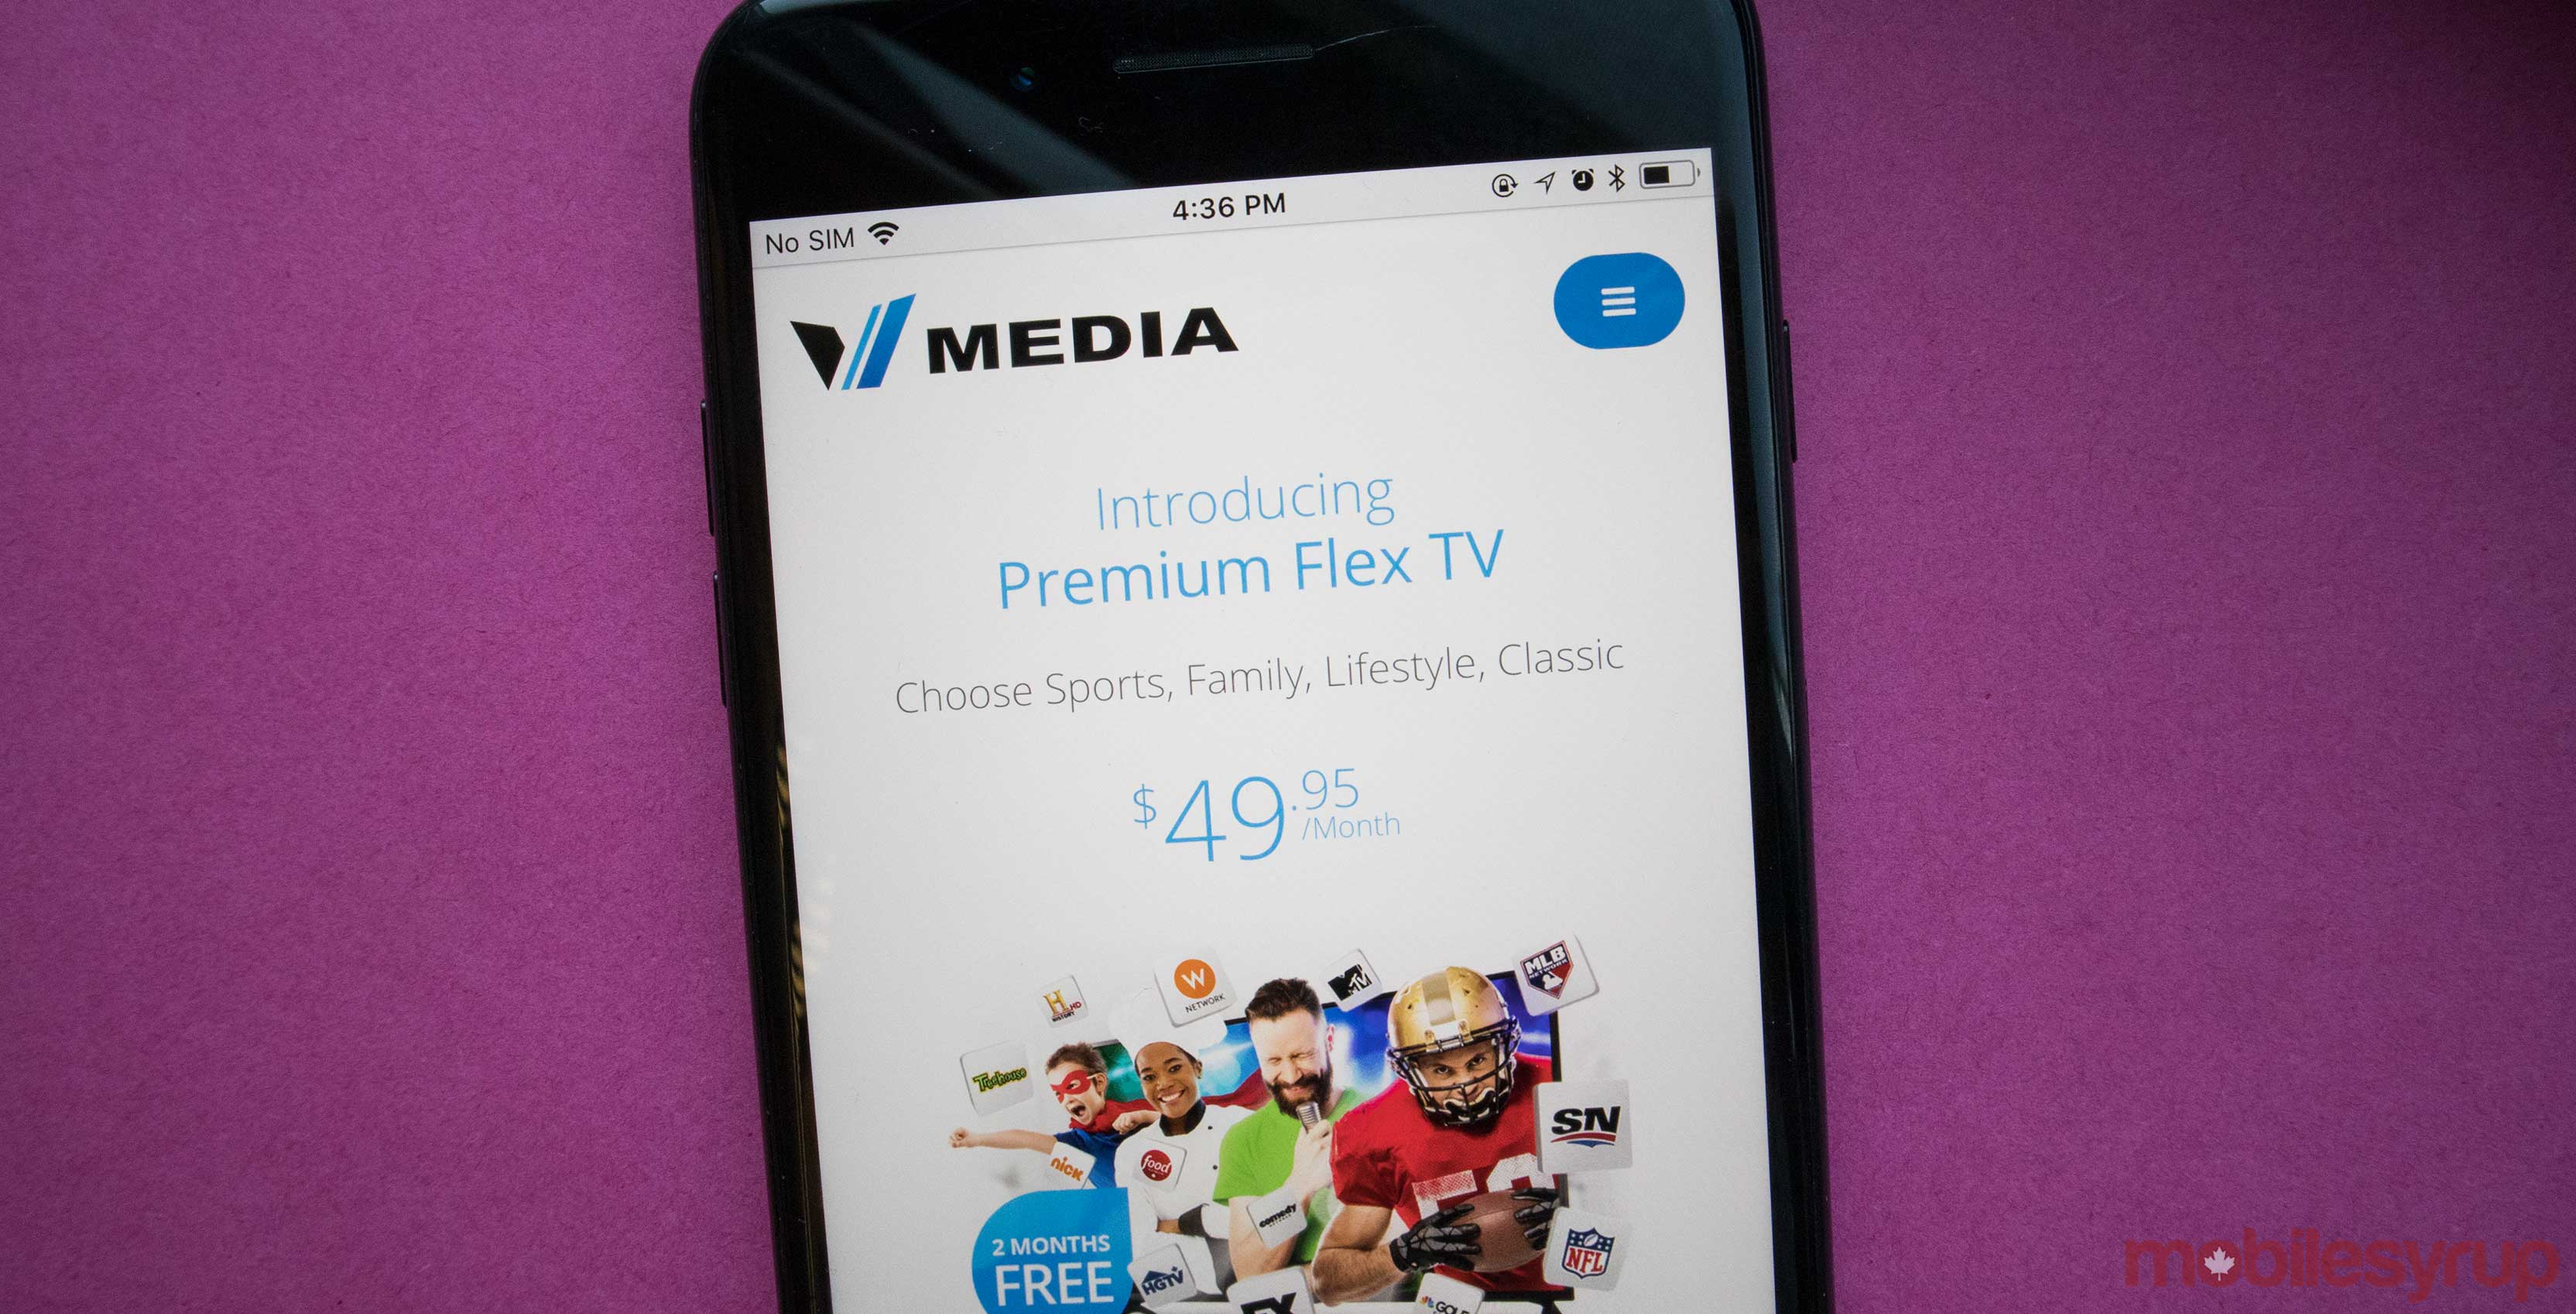 Vmedia on phone